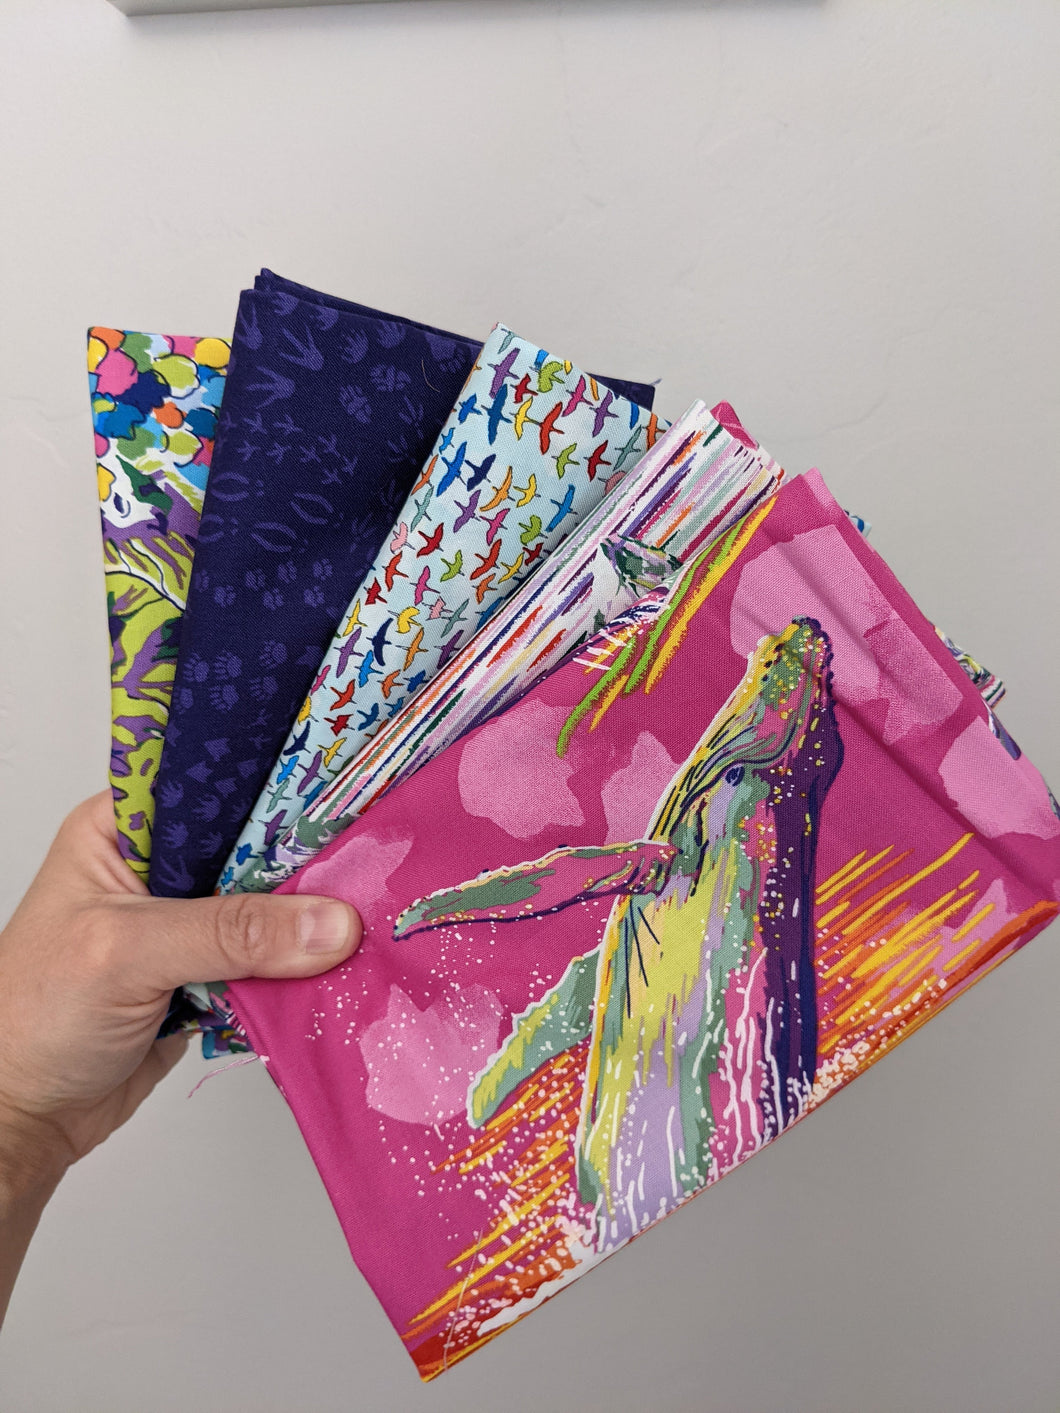 5 Fabric Bundle - Migration by Lorraine Turner - You Choose the Size